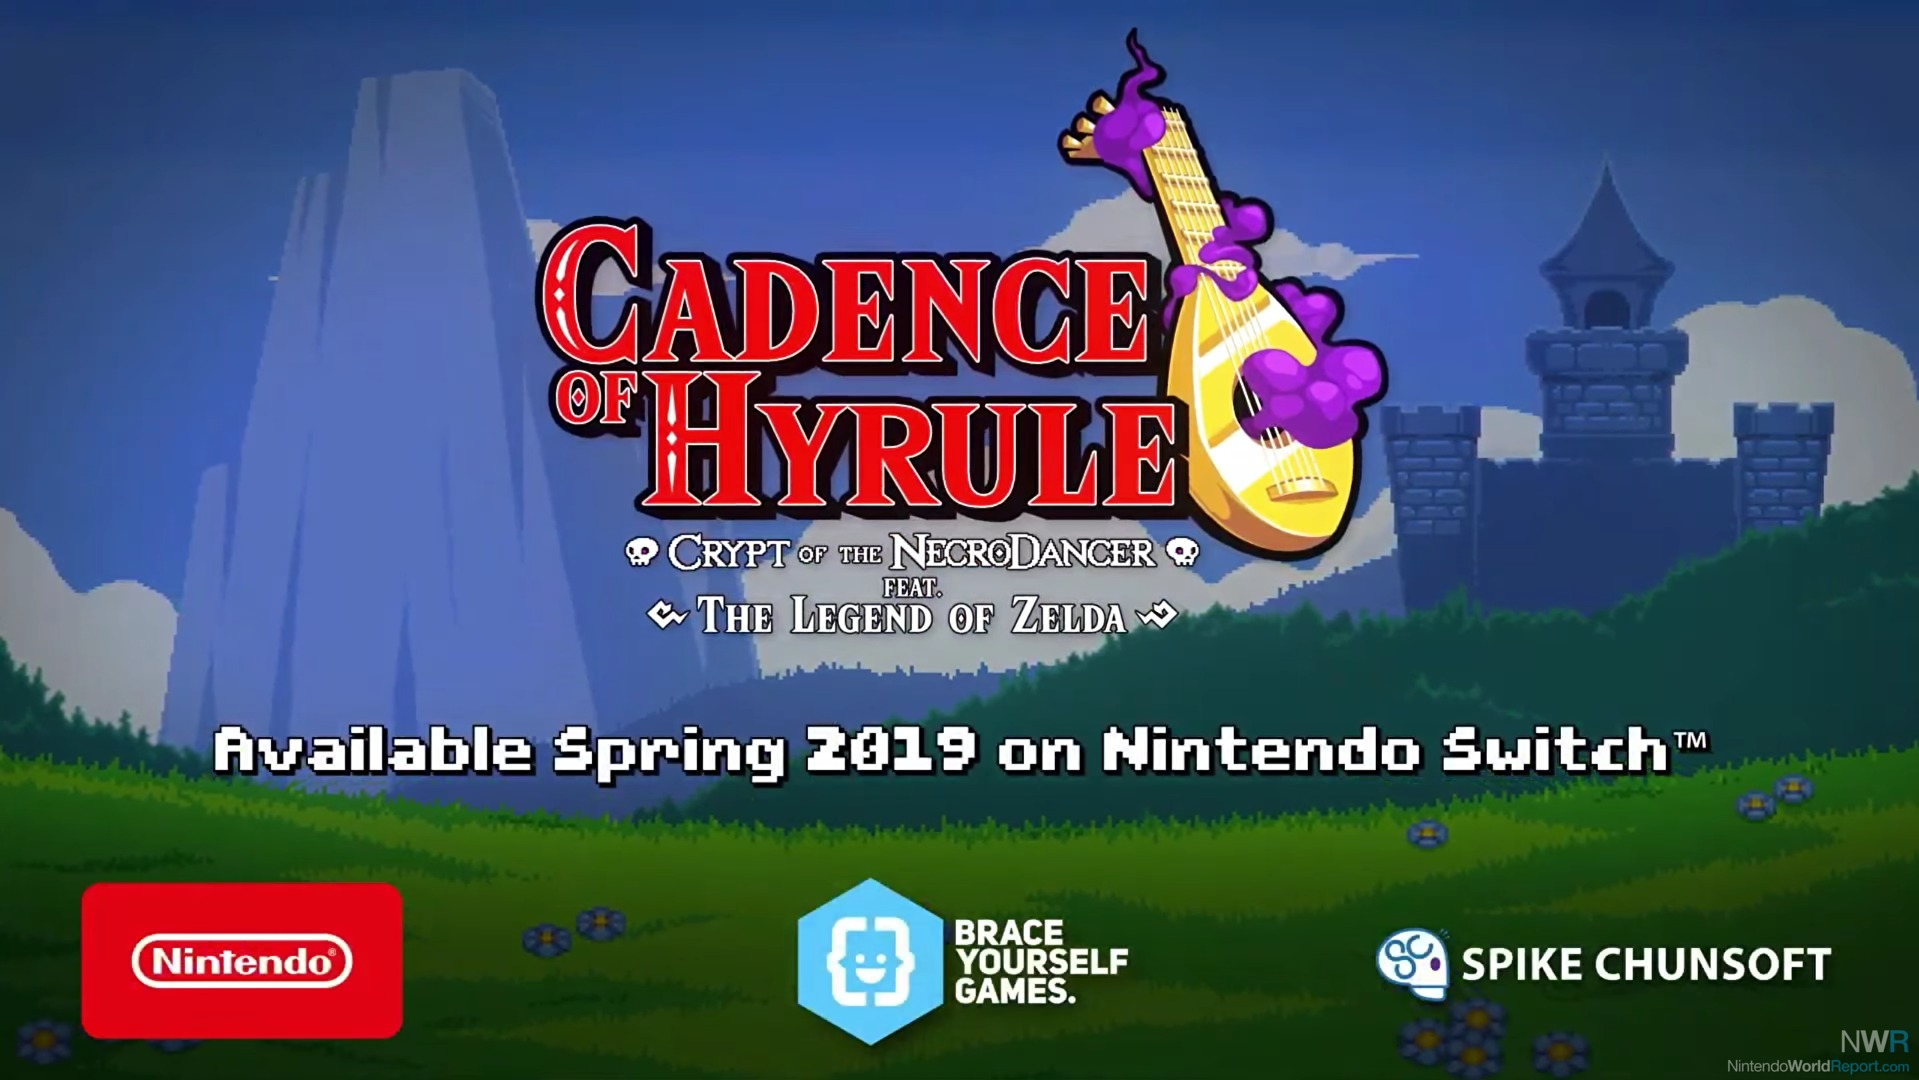 Cadence of Hyrule brings Zelda and Link to Crypt of the Necrodancer